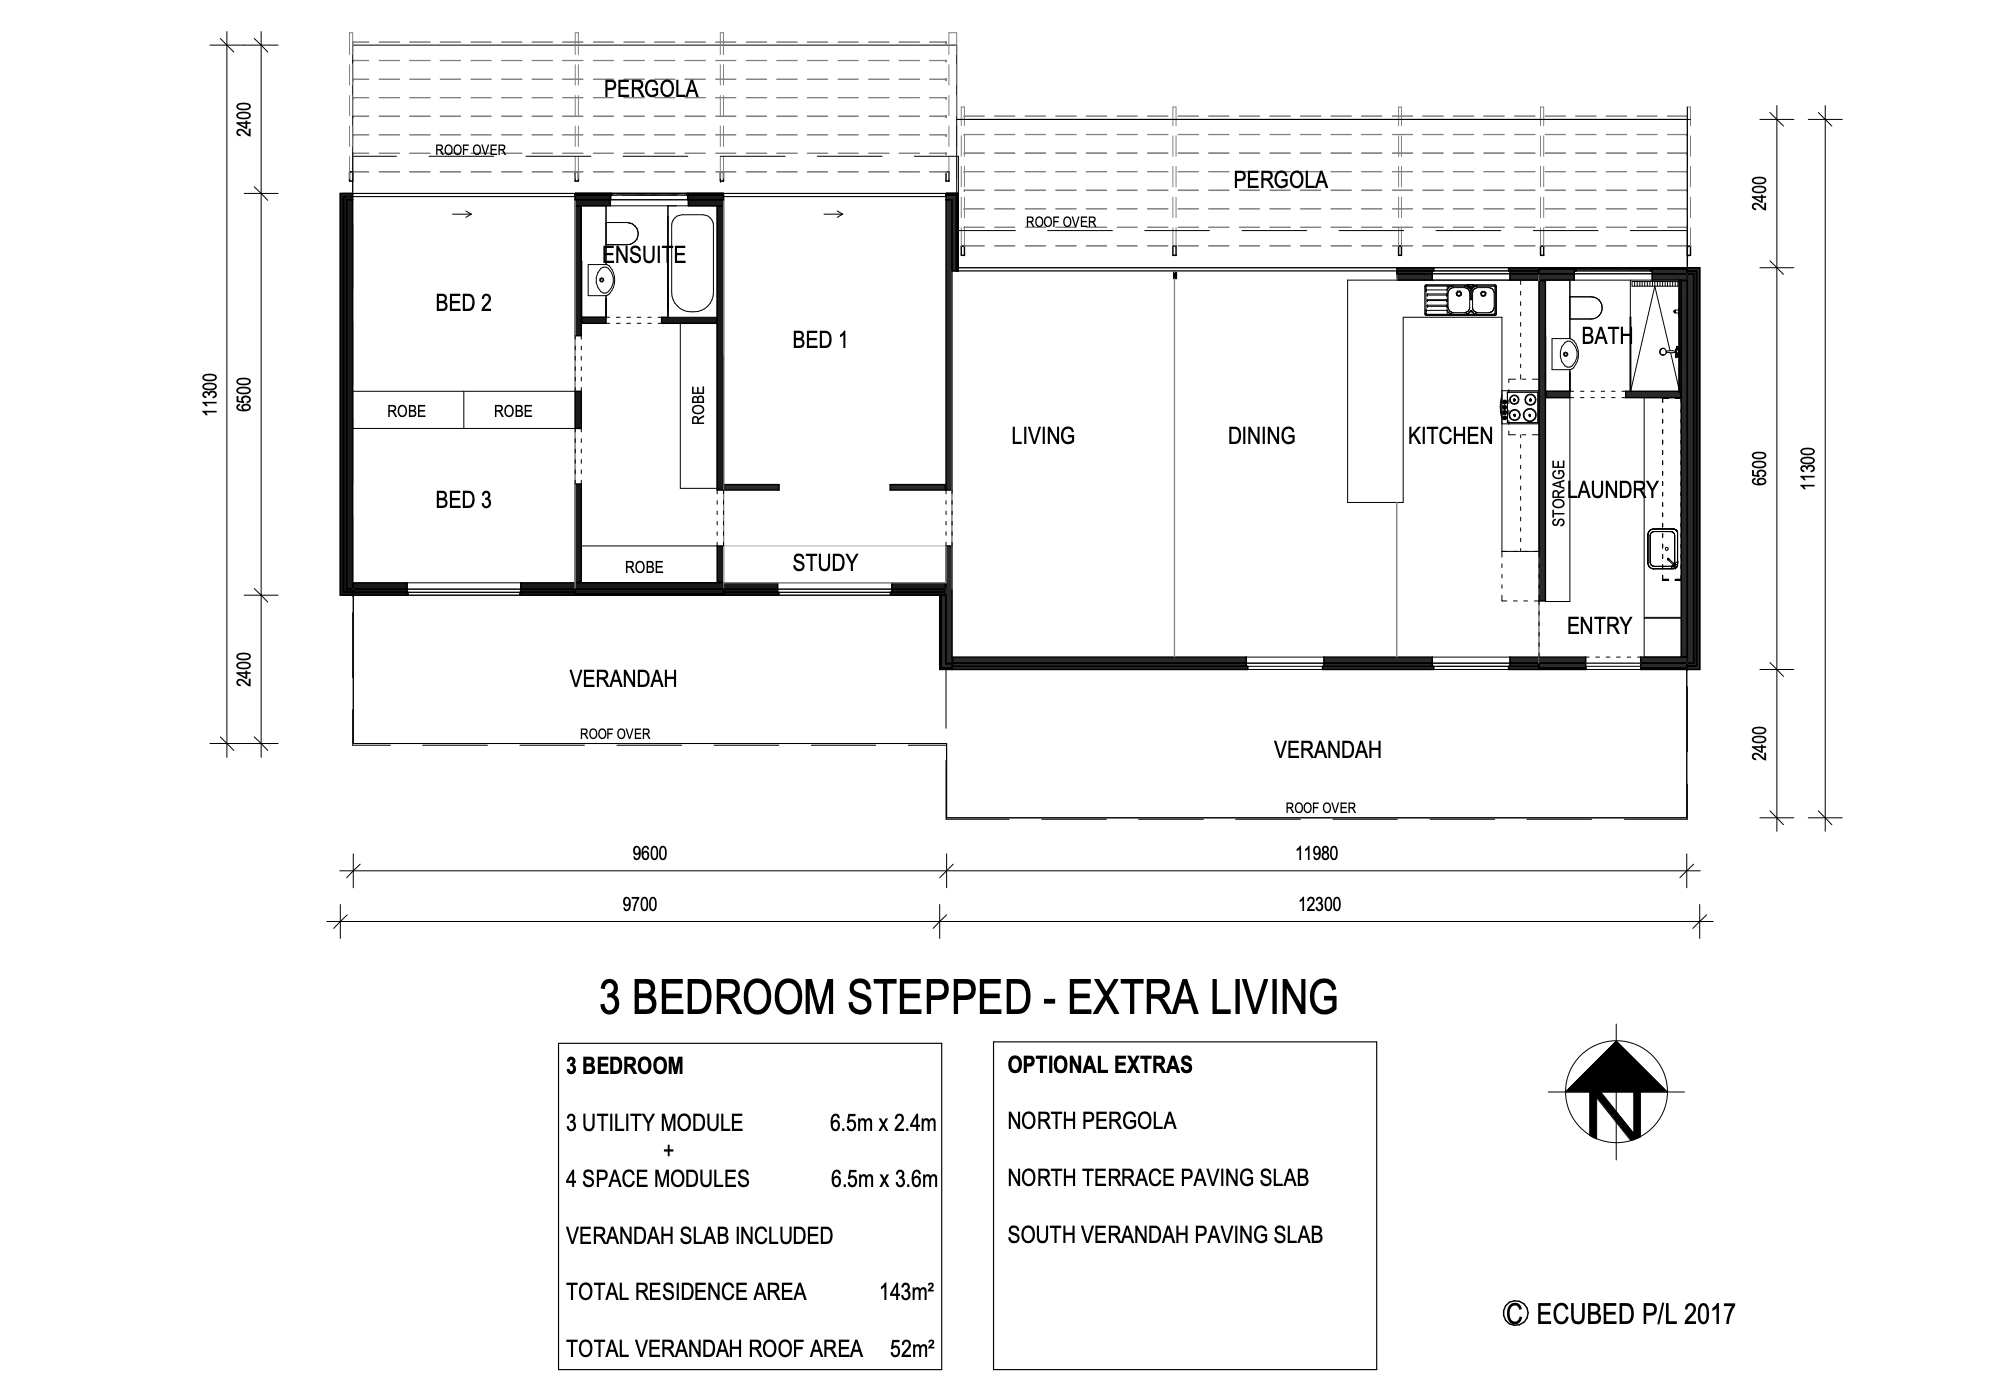 3 Bedroom stepped